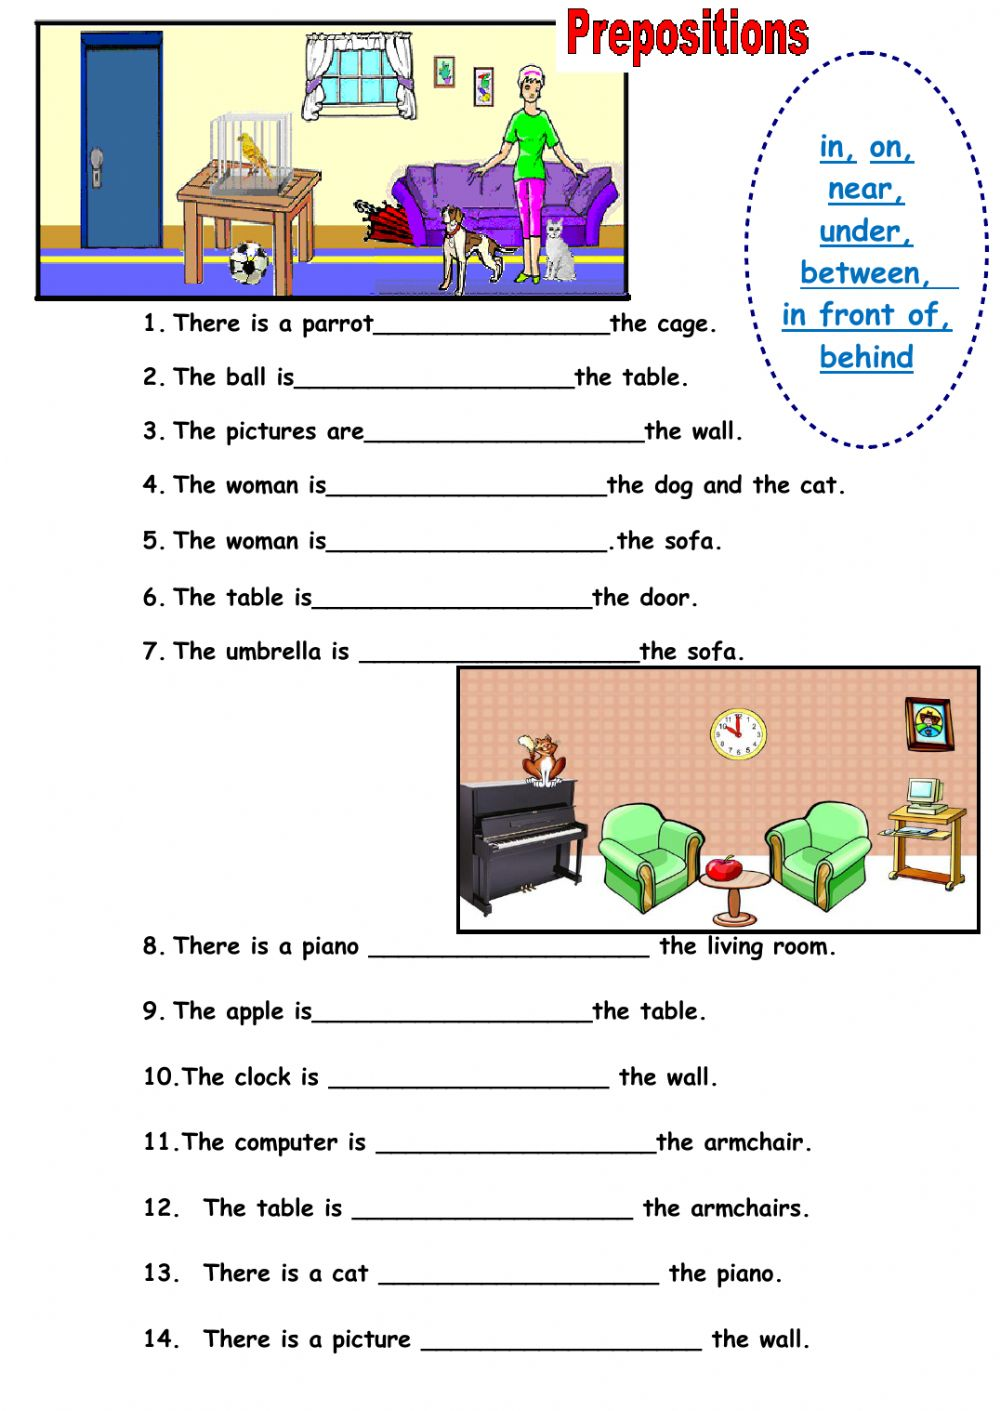 Prepositions of place Interactive worksheets – Prepositions of Place Worksheet